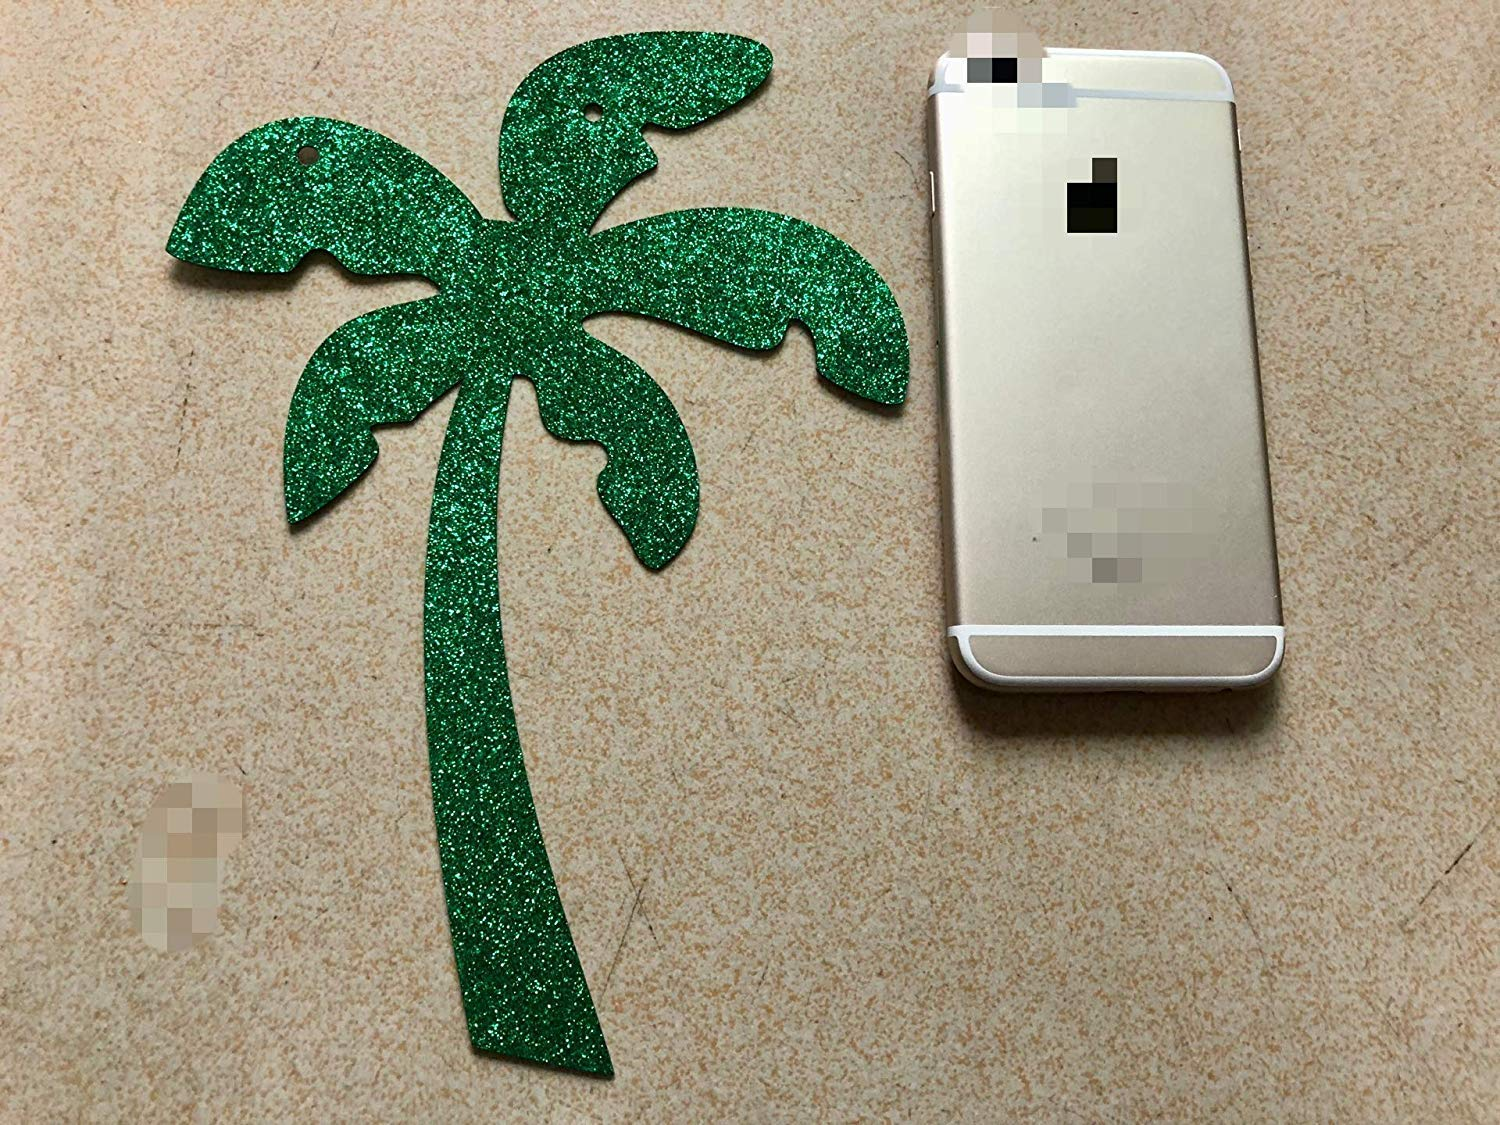 Hawaii Luau Summer Beach Party Decoration Supplies Gold Glittery Drink Up Beaches Coconut Tree Banner